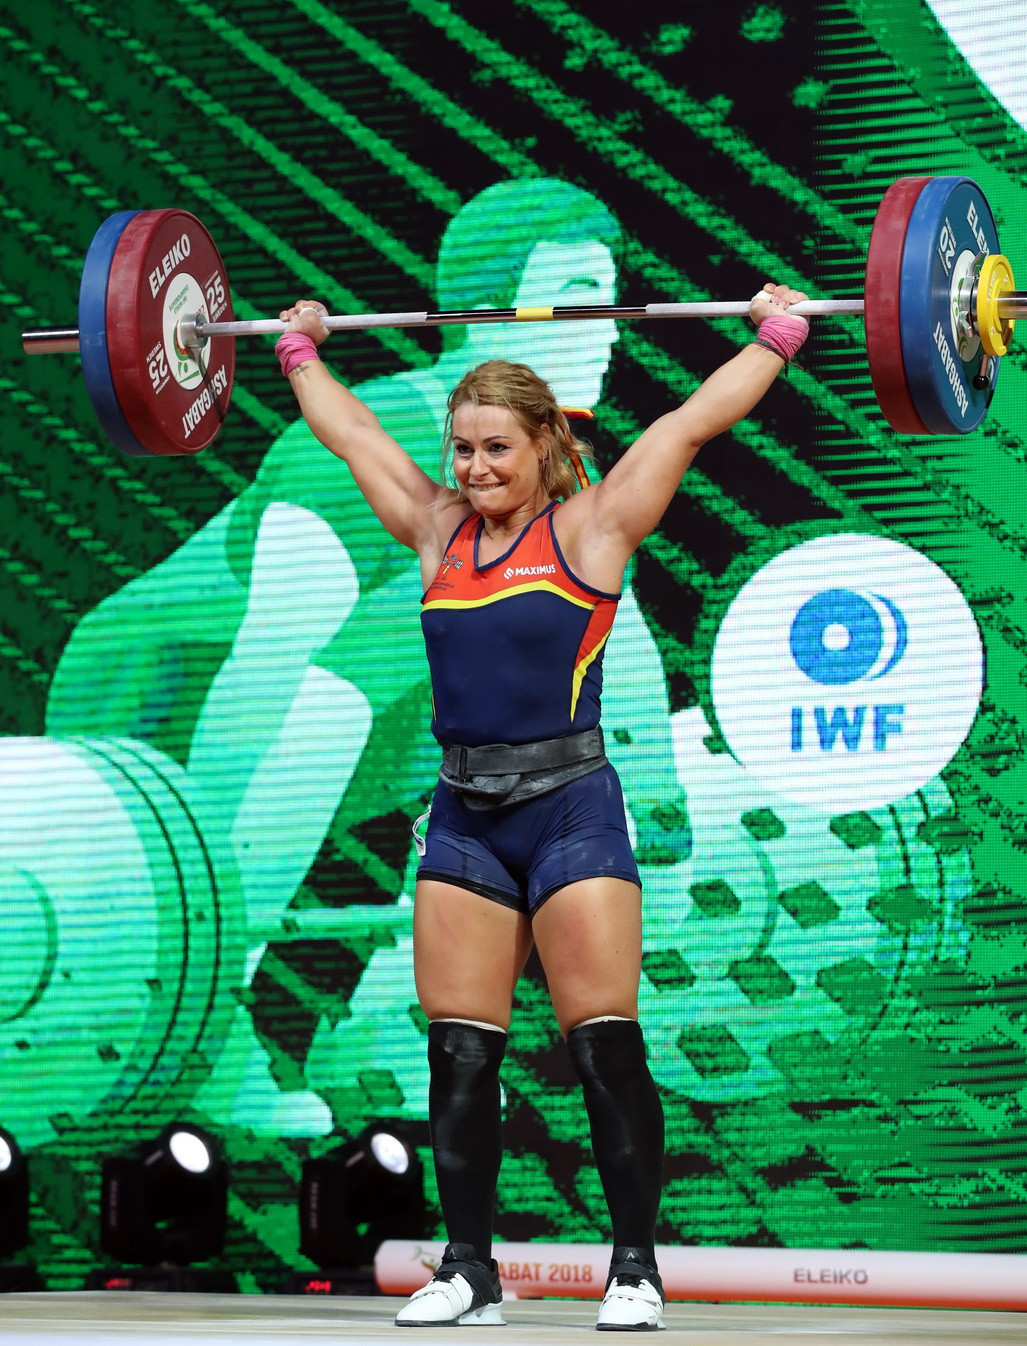 It came after she finished first in the snatch with 113kg and third in the clean and jerk with 136kg ©IWF